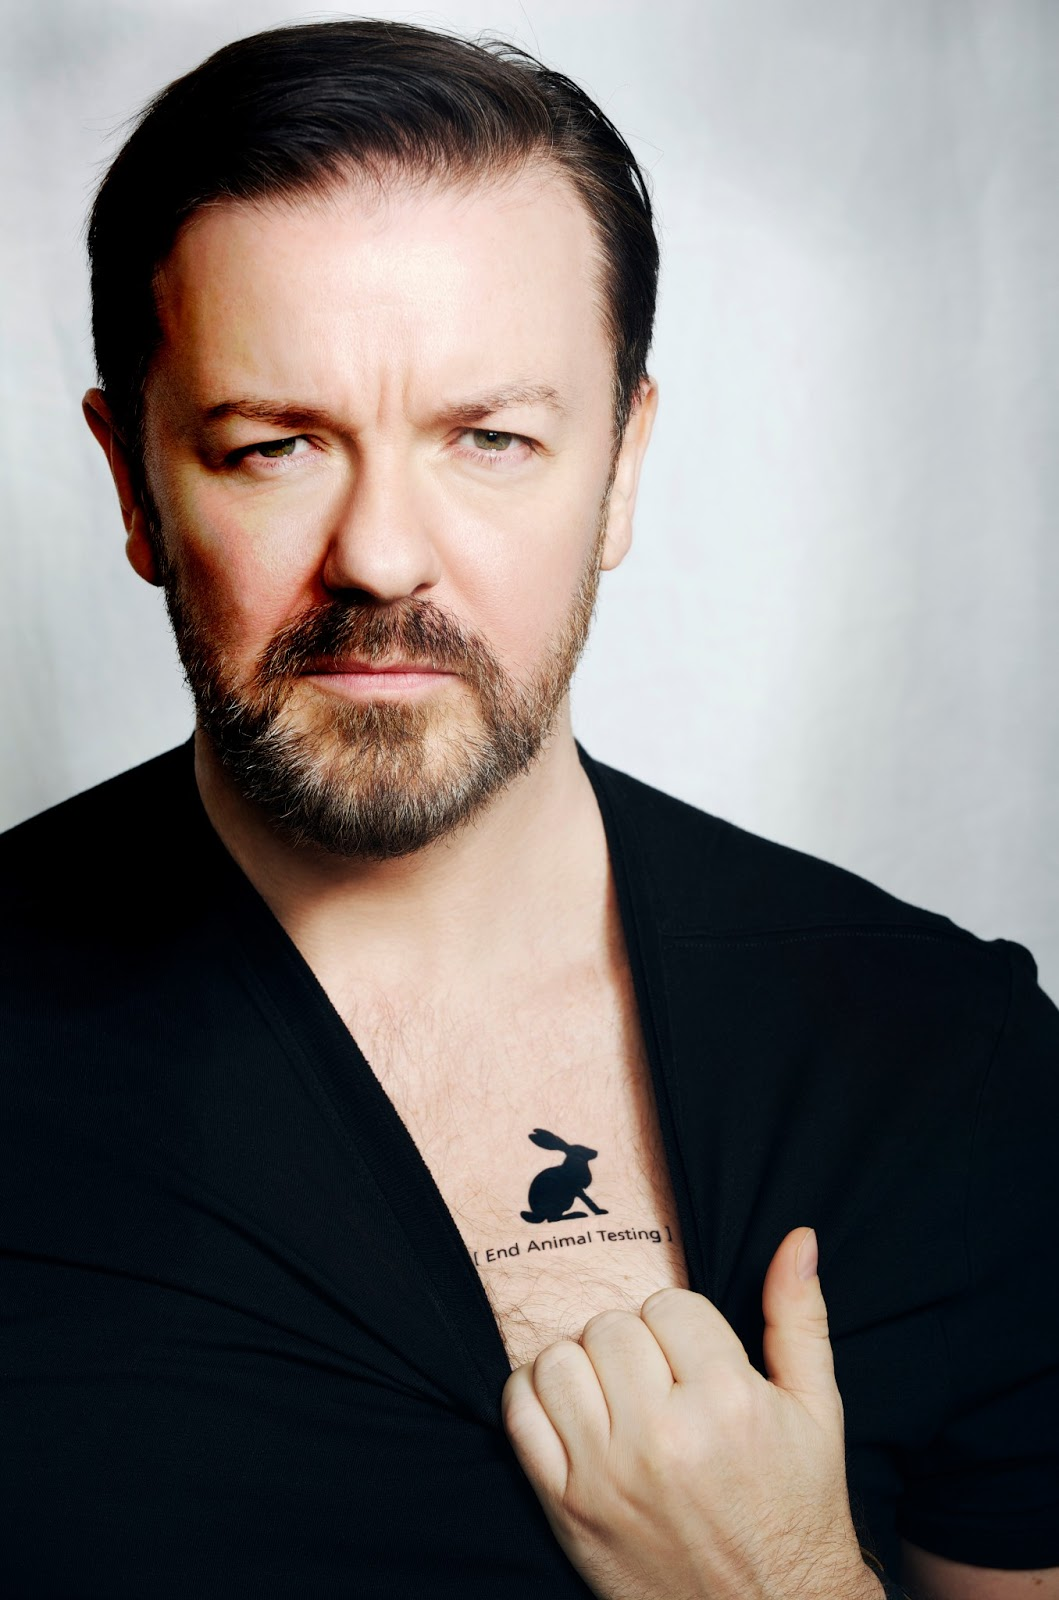 Ricky Gervais Movies List: Best to Worst |Ricky Gervais Movies